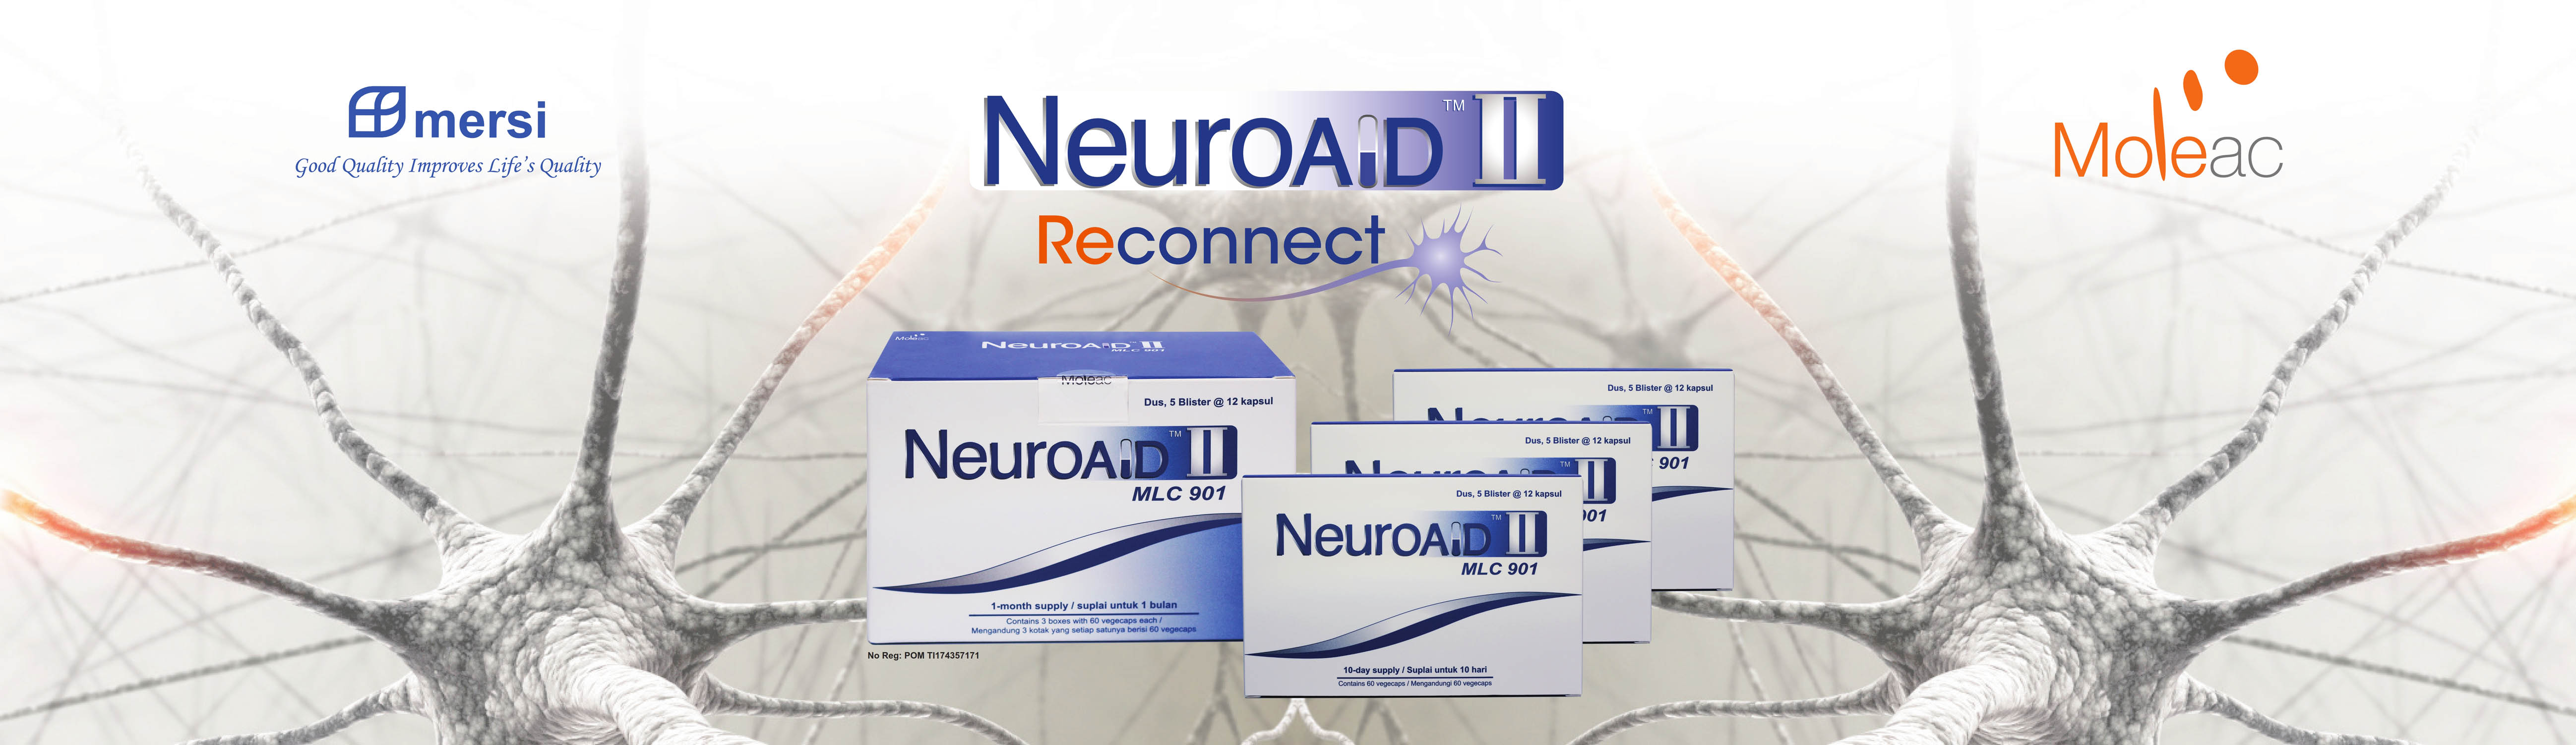 Neuroaid Slide